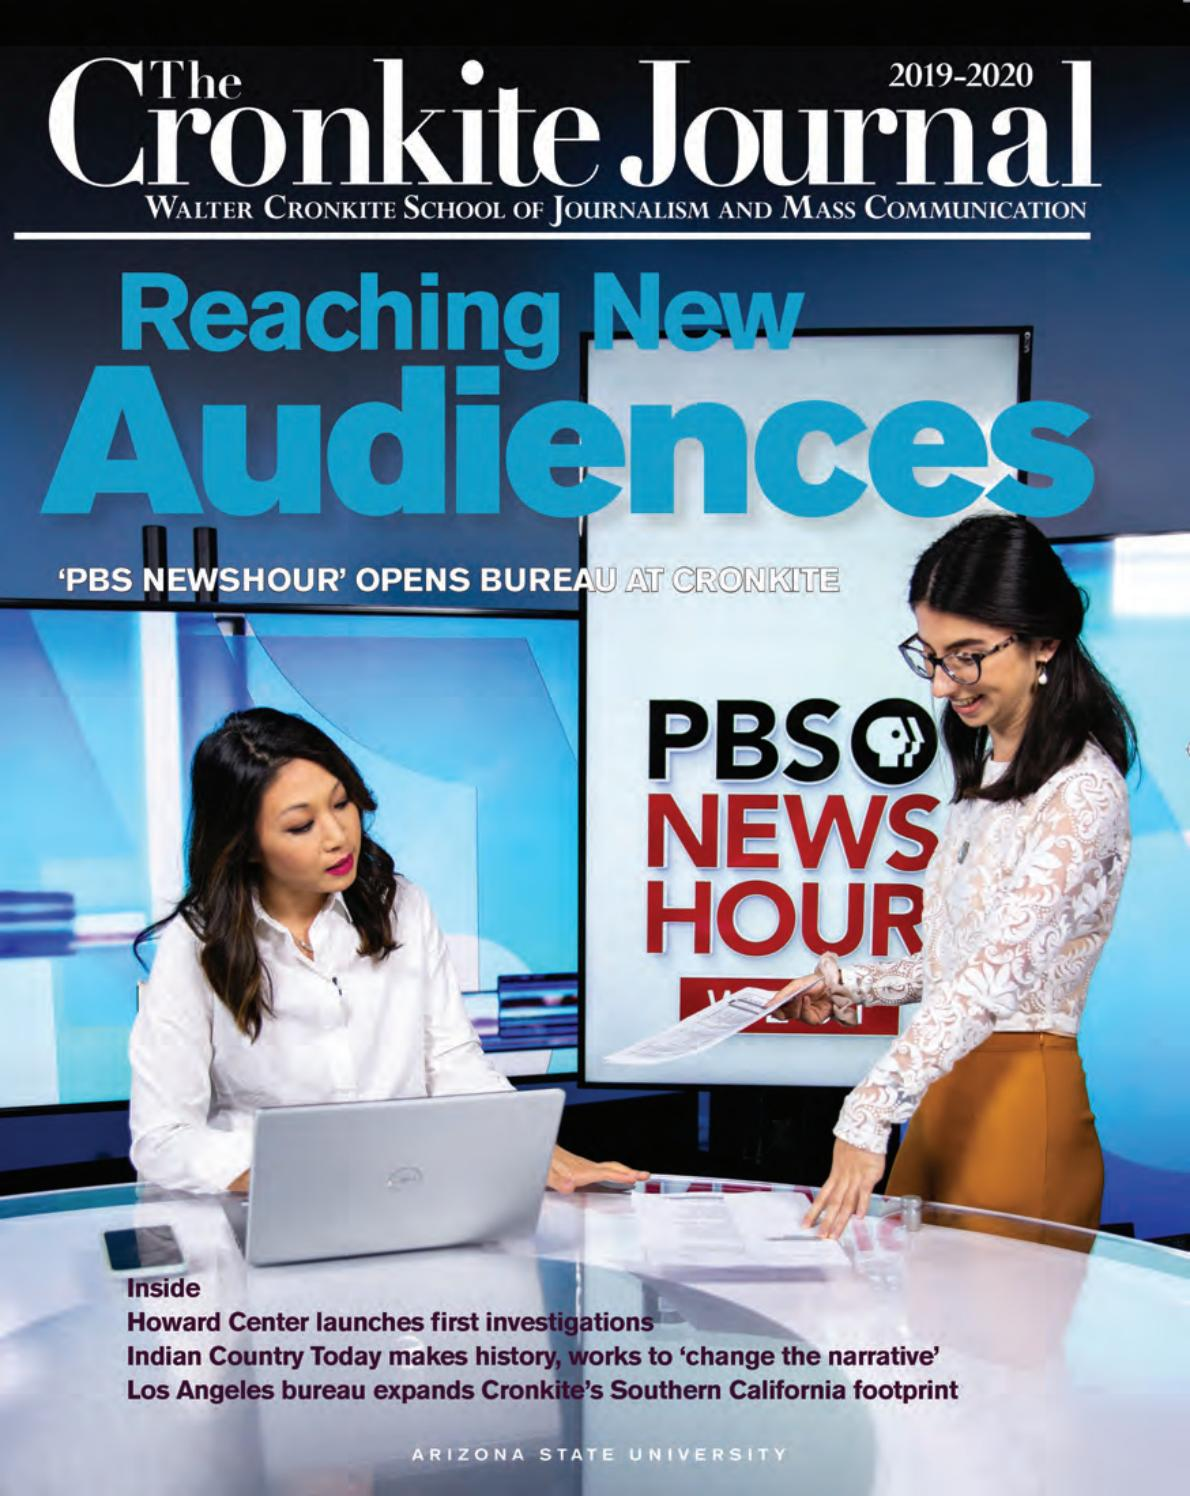 Cronkite Journal 2019 2020 By Walter Cronkite School Of Journalism And Mass Communication Issuu